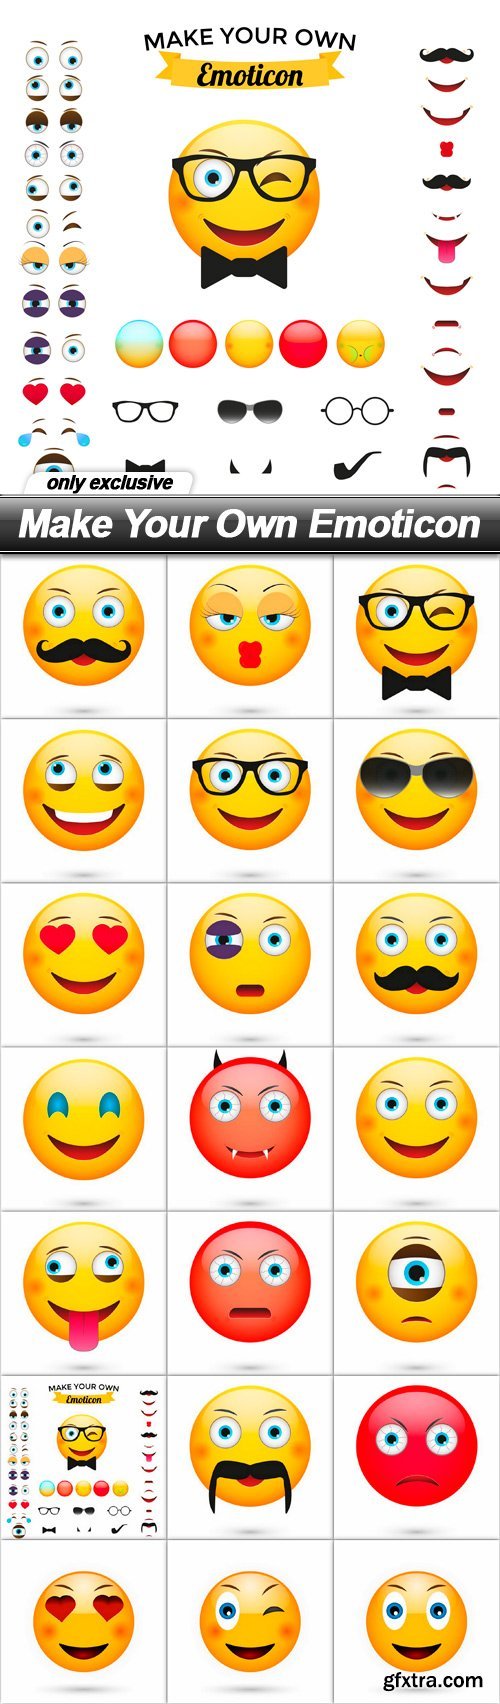 Make Your Own Emoticon - 21 EPS